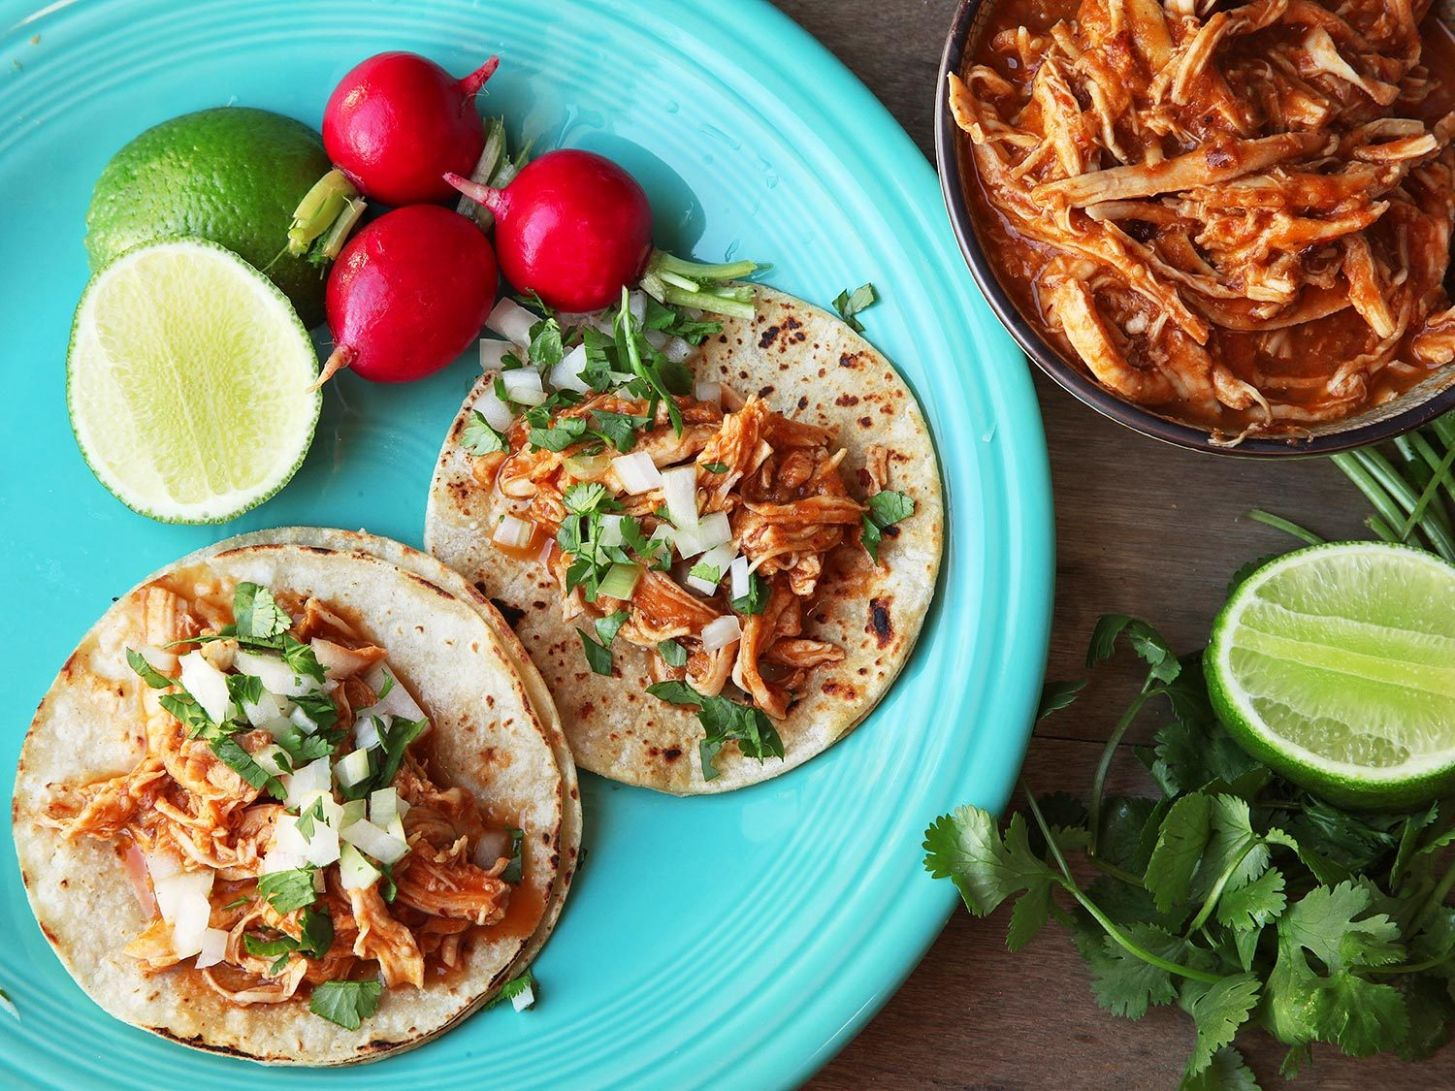 Easy One-Pot Chicken Tinga (Spicy Mexican Shredded Chicken) Recipe - Recipes Chicken Breast Mexican